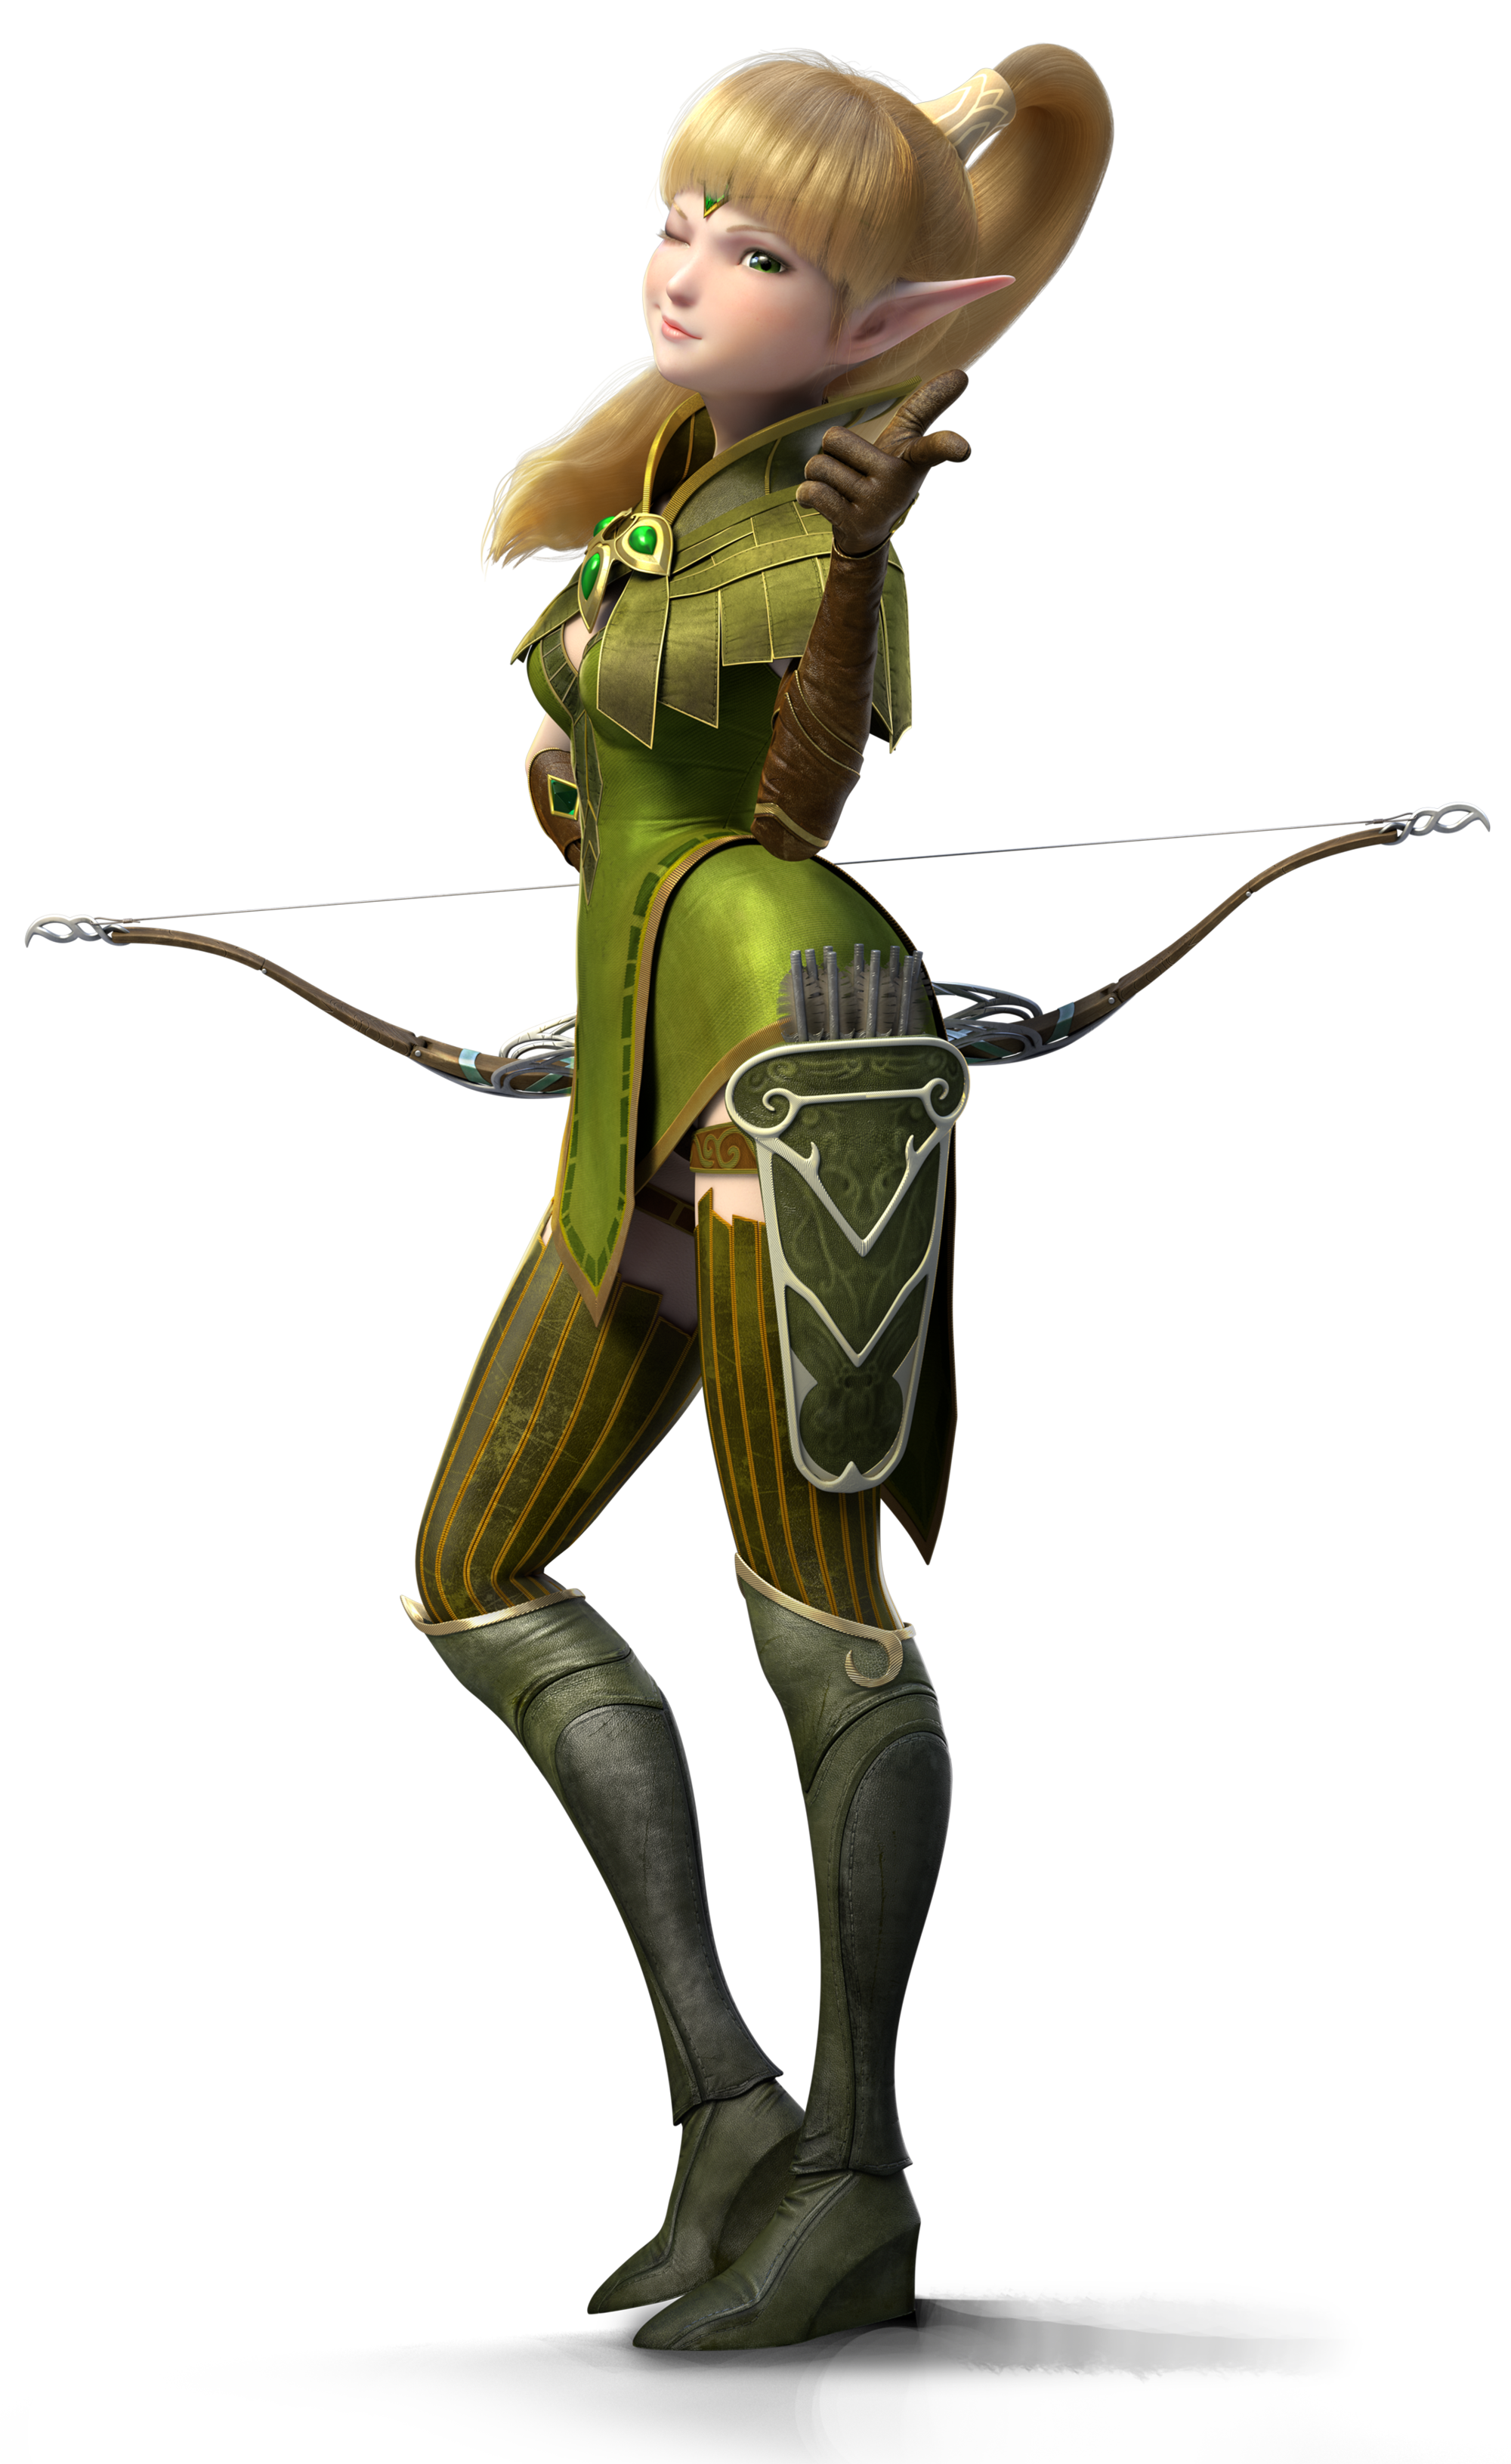 Bowyer Spear Warriors Nest Youtube Dragon Dawn PNG Image